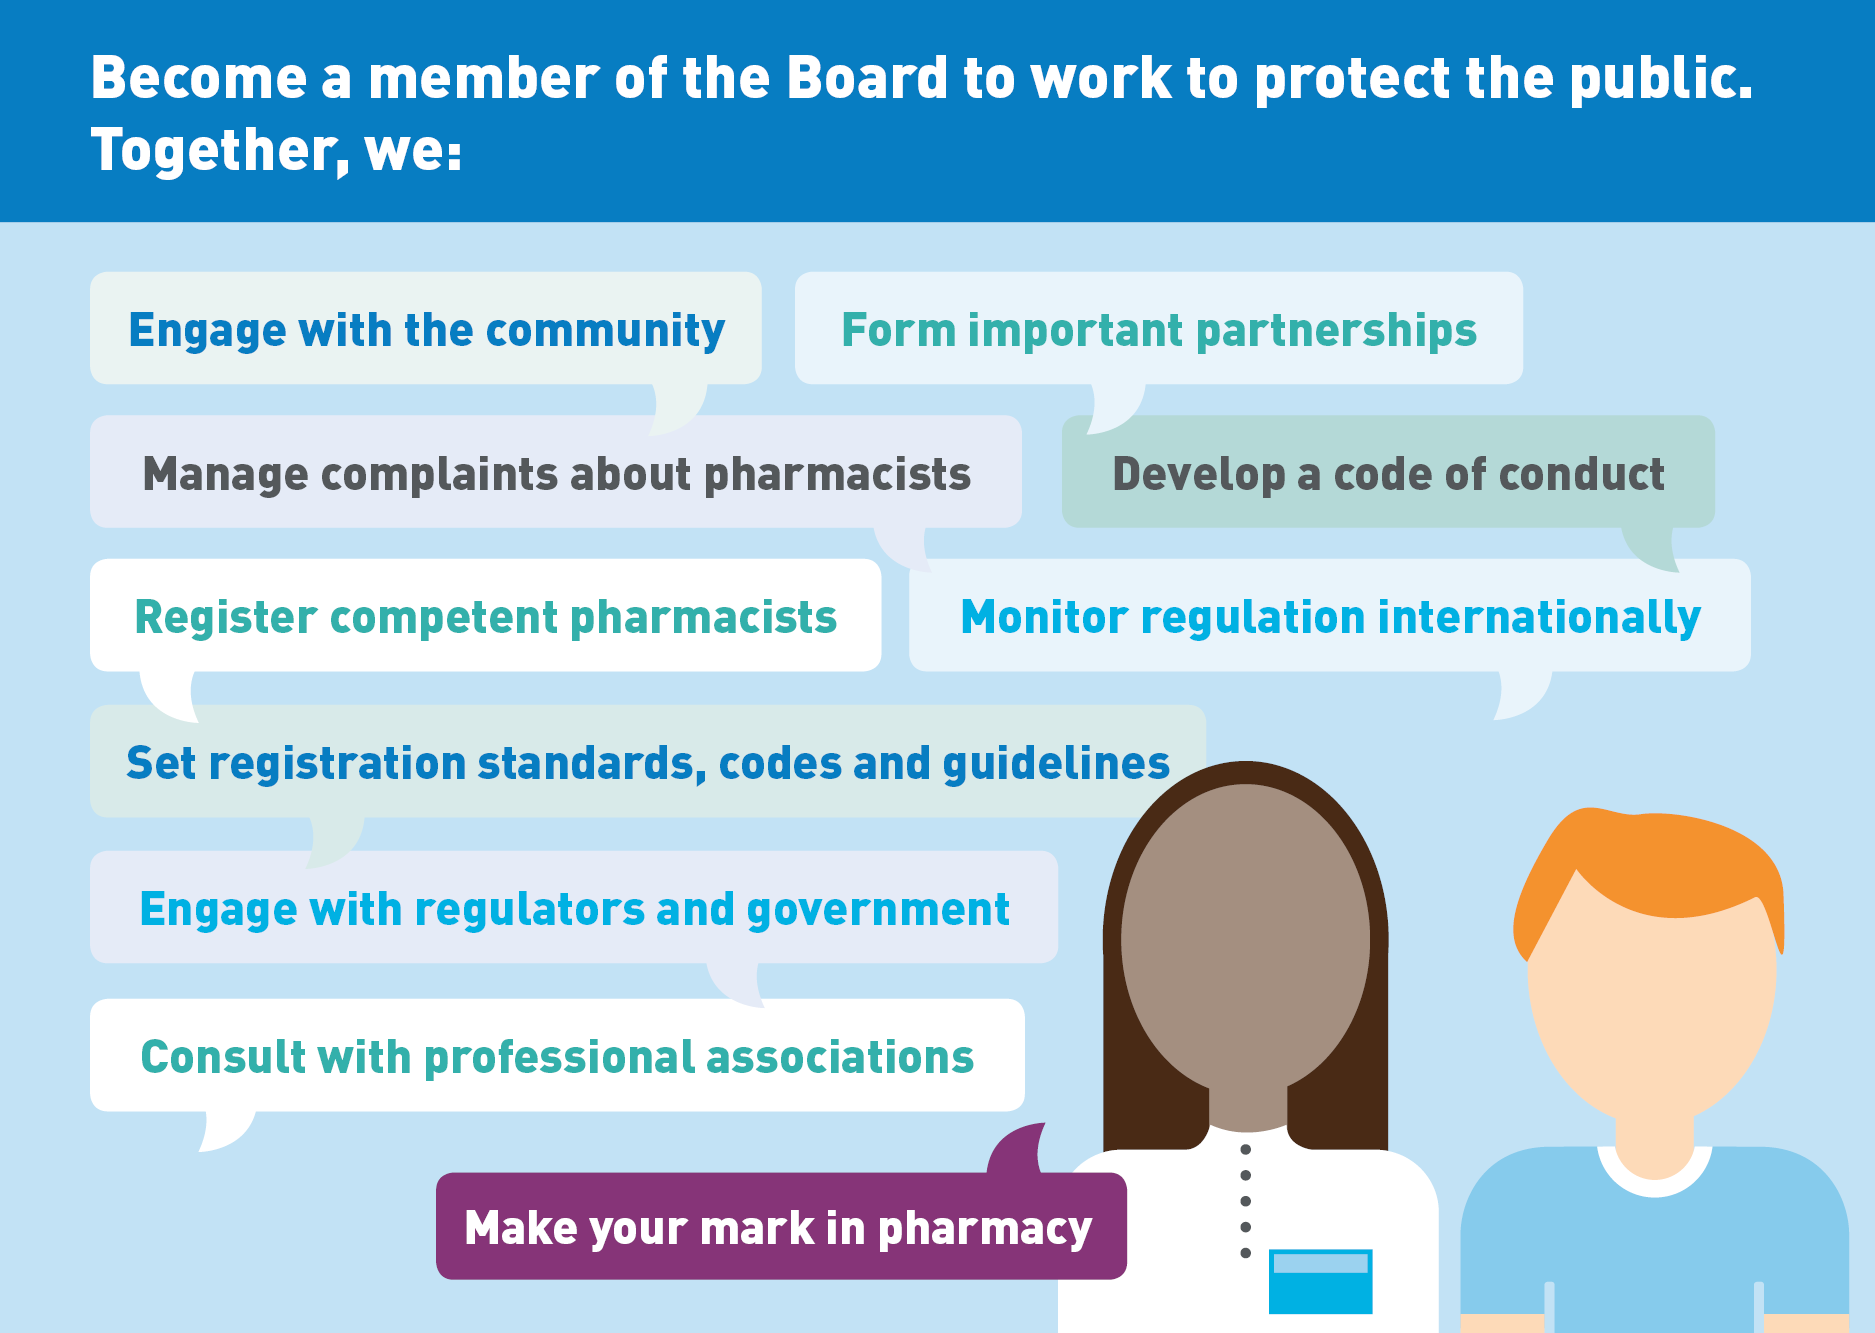 I'm a practitioner or community Board member - Board vacancies